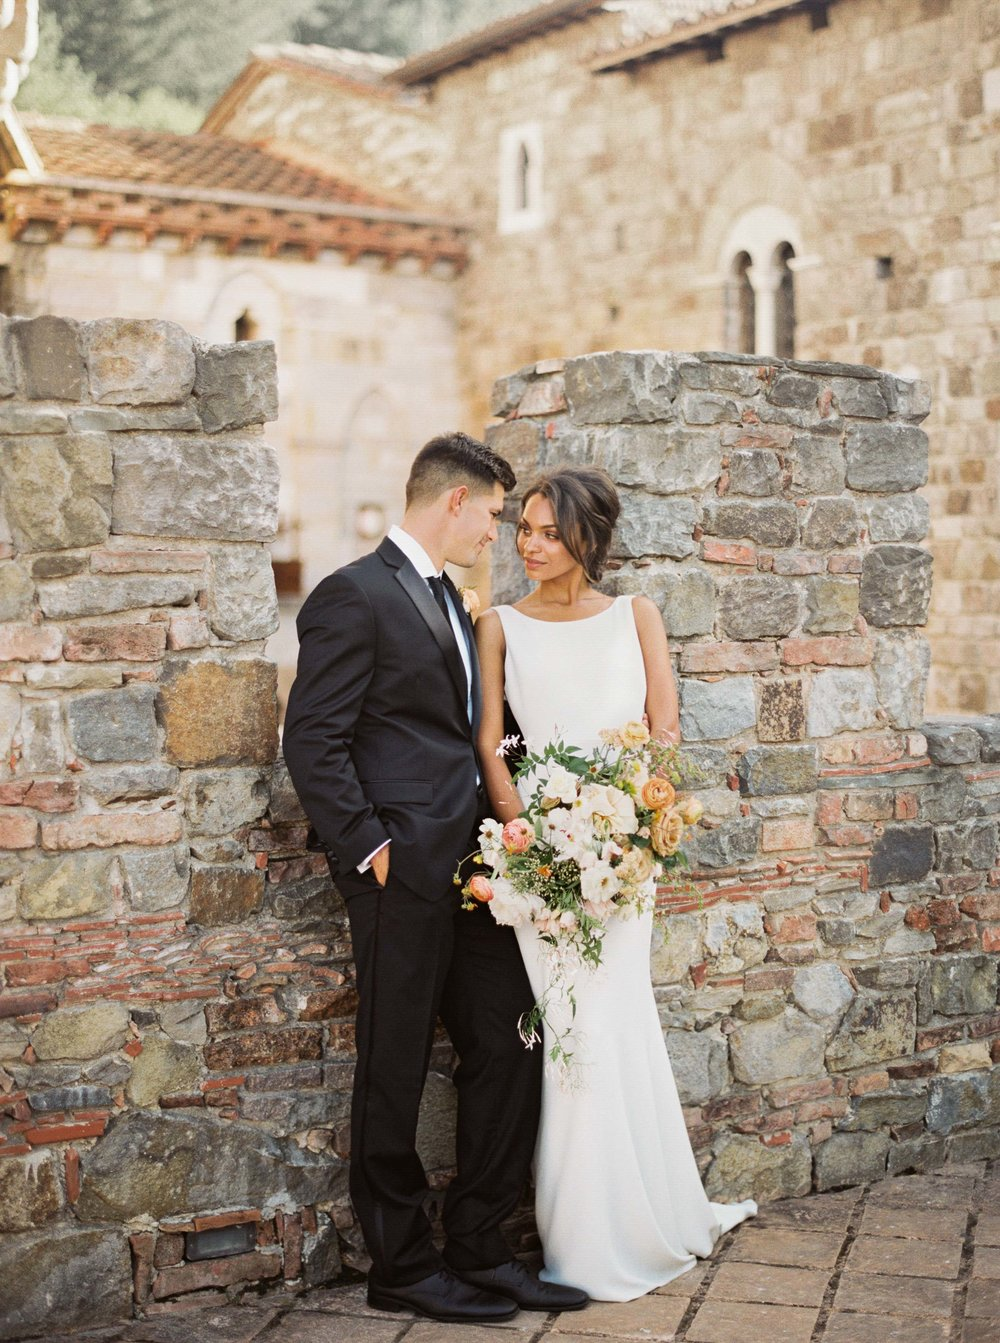 046napa_wedding_photographer_and_videographer_destination_and_elopement_photography.jpg